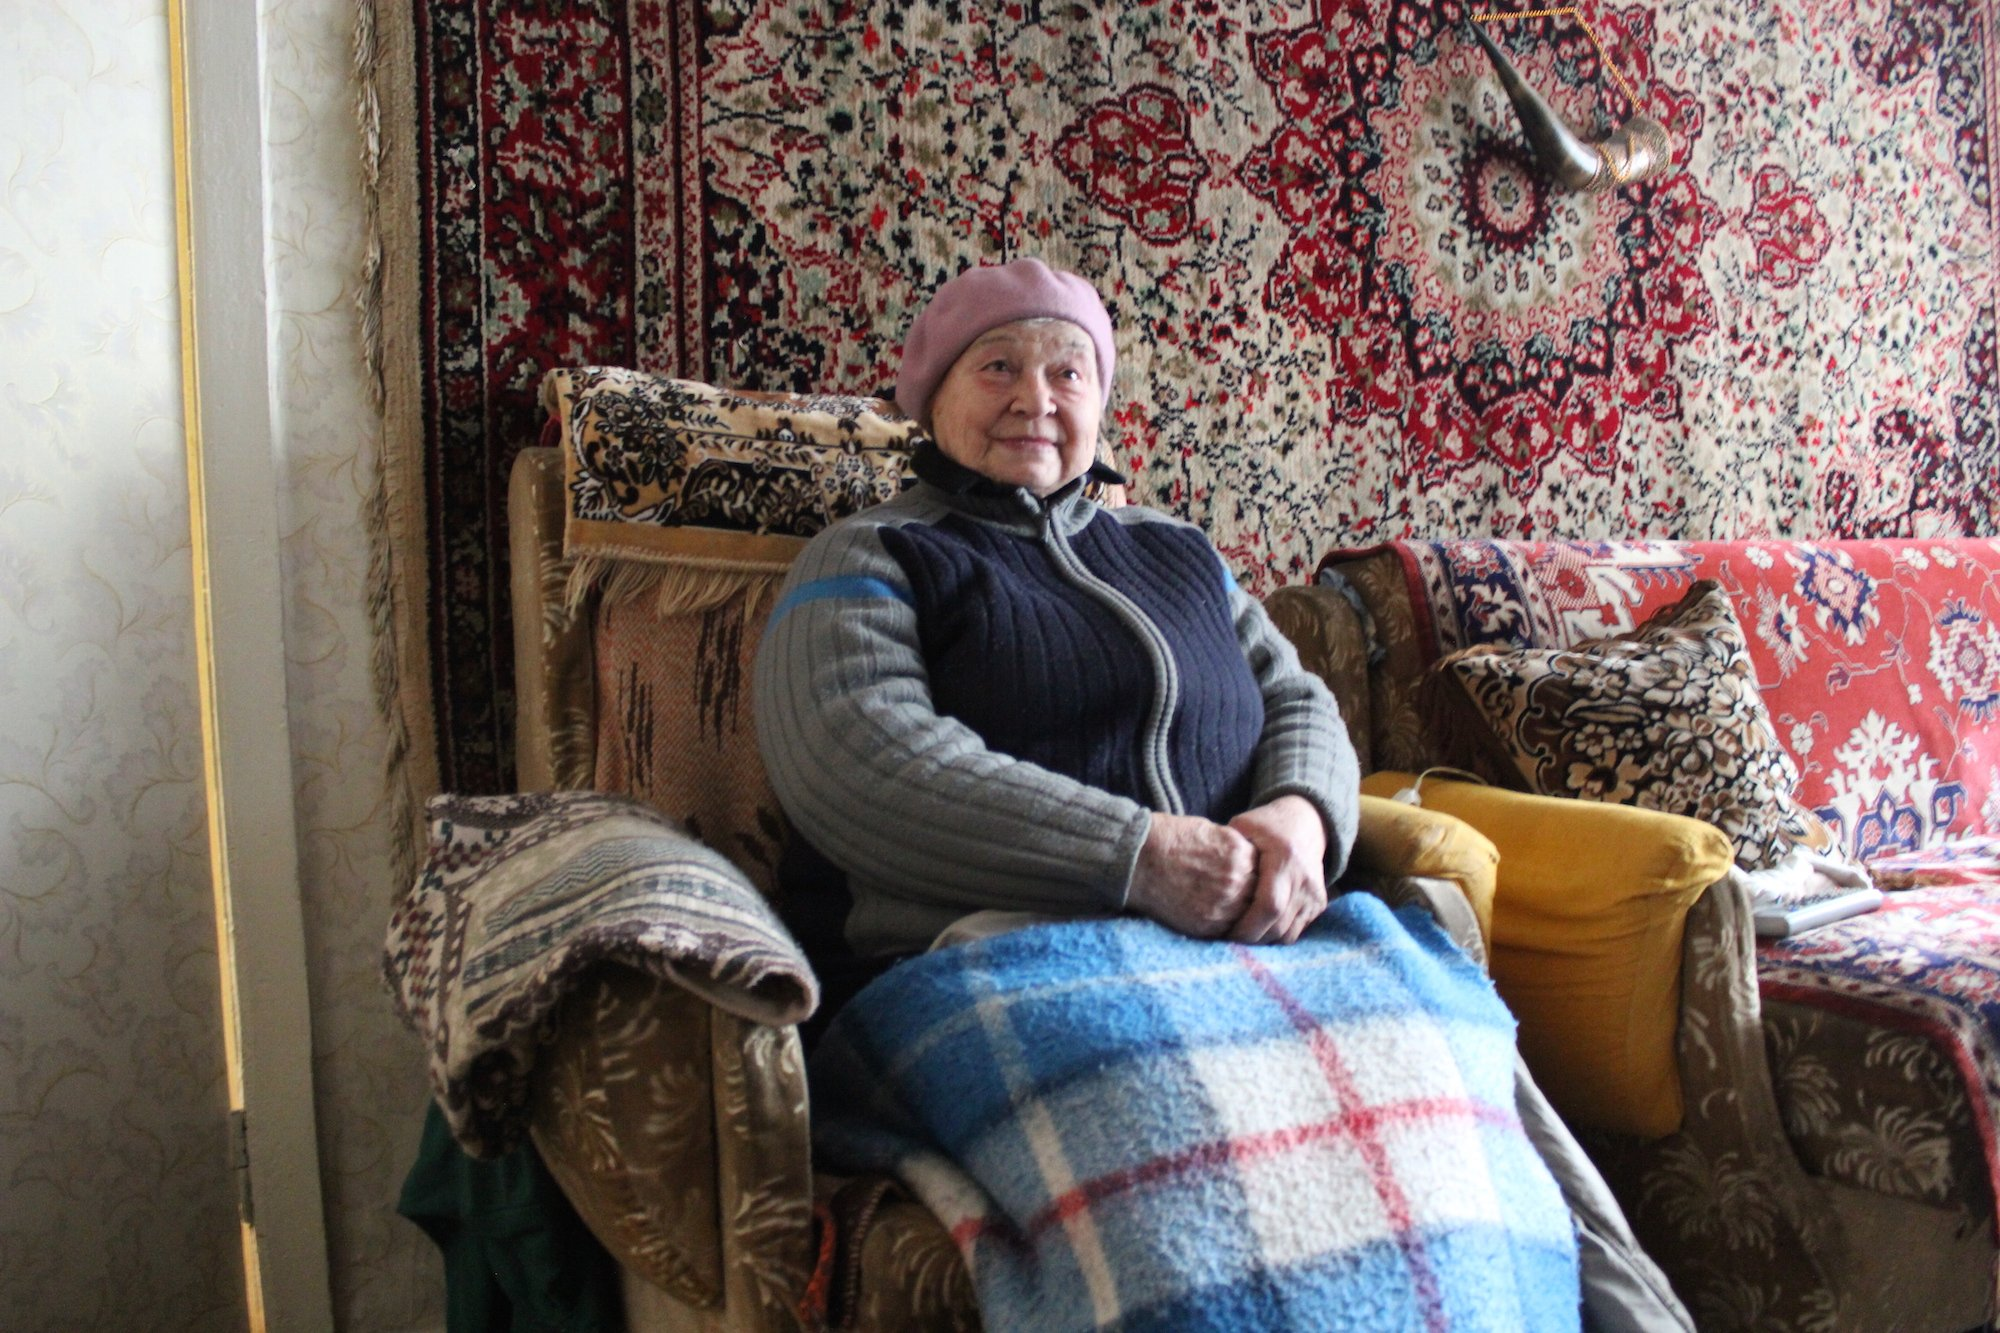 Anna Reshedko, 78, struggles to keep warm in March 2015 in her flat in the rebel-held Ukrainian town of Pervomaisk close to the frontline of a 13-month conflict that has left thousands cut off from aid